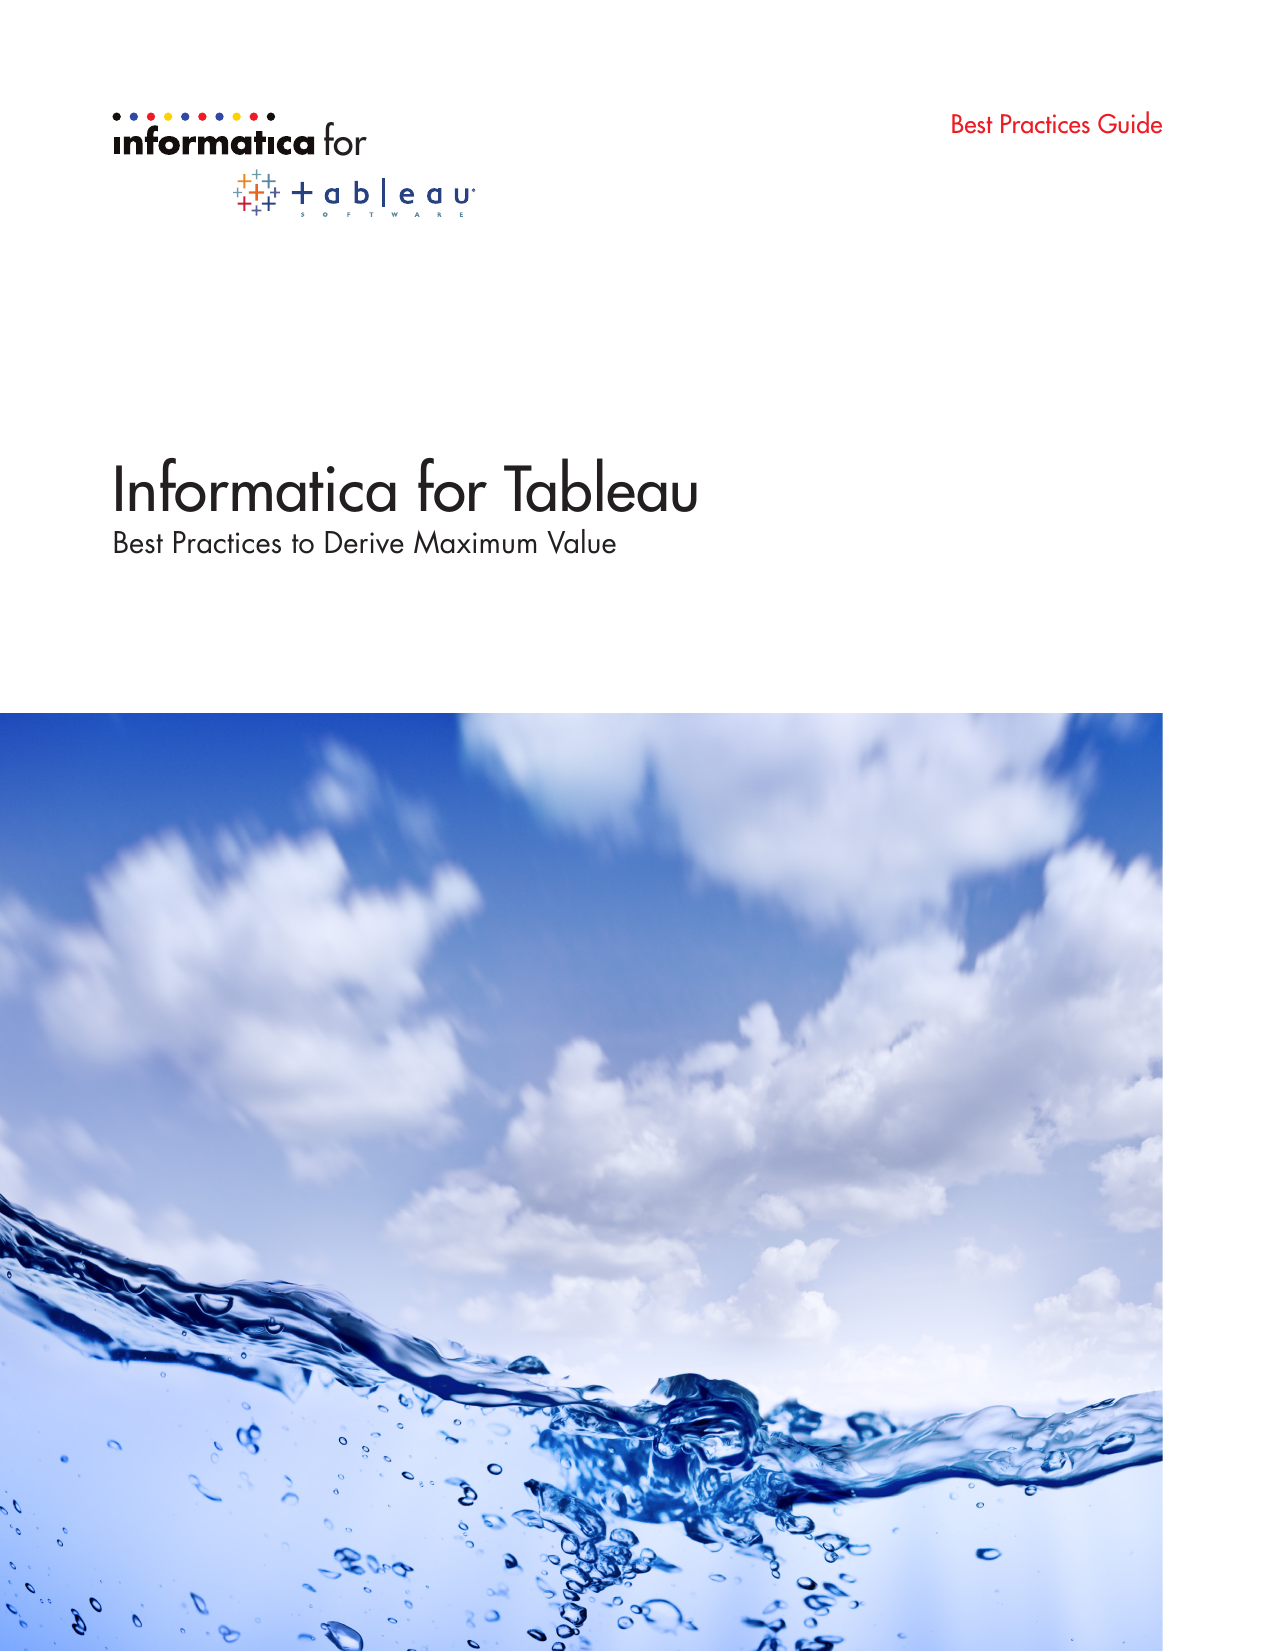 Informatica for Tableau for Best Practices to Derive Maximum